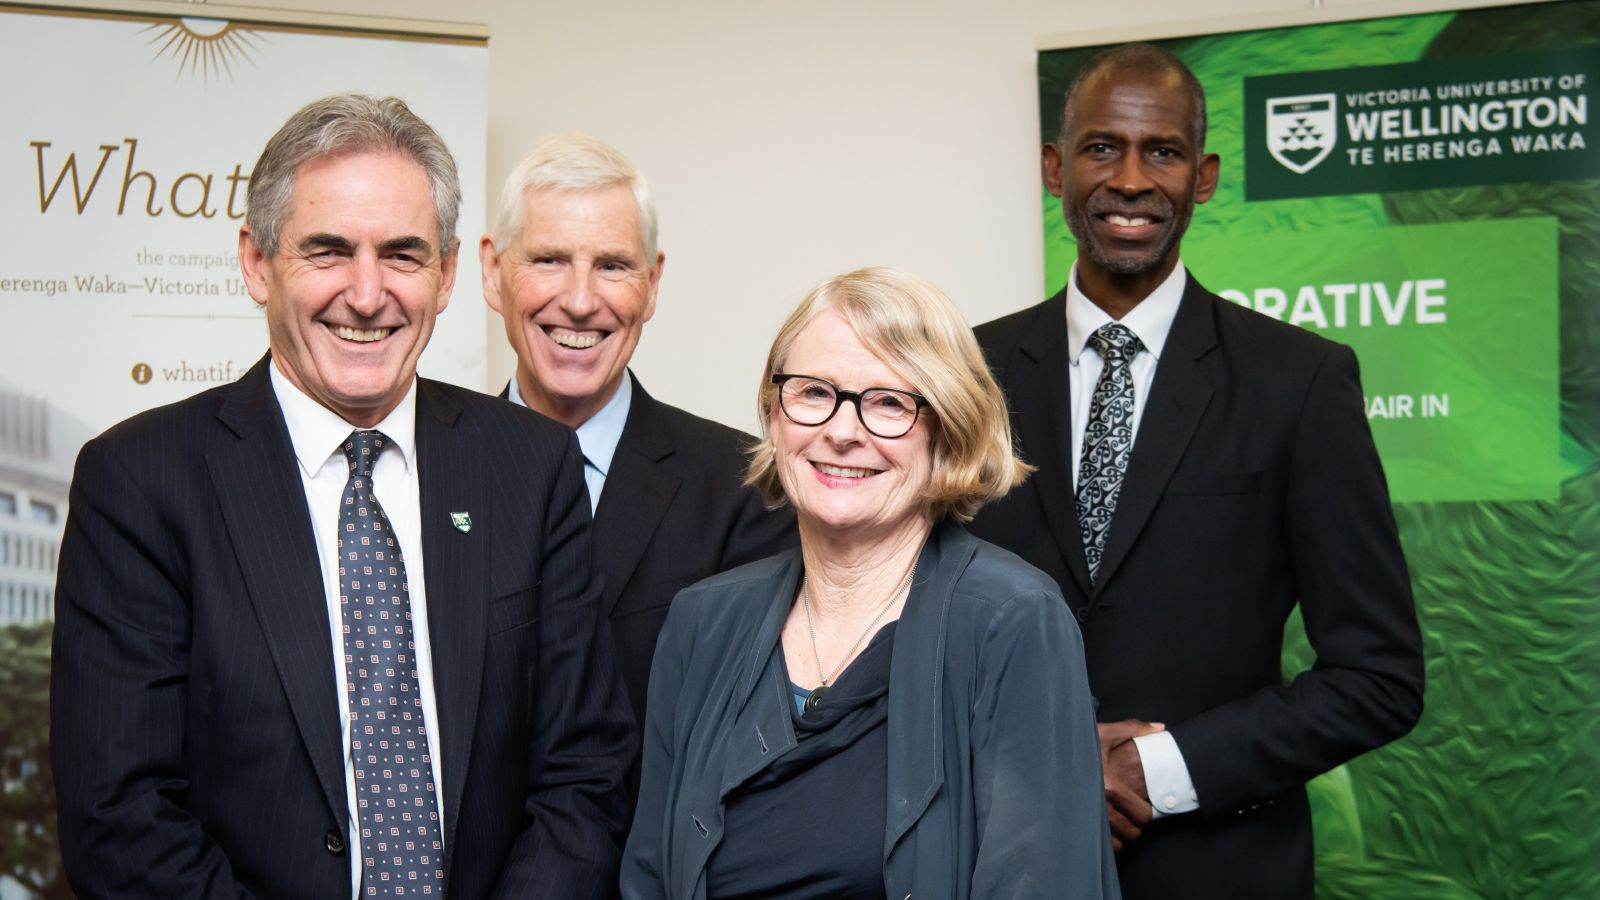 Vice Chancellor Grant Guilford, Chair in Restorative Justice Chris Marshall, Pro Vice Chancellor Wellington School of Business and Government Ian Williamson, and Jenny Gill, Trustee of Grace Memorial Trust.